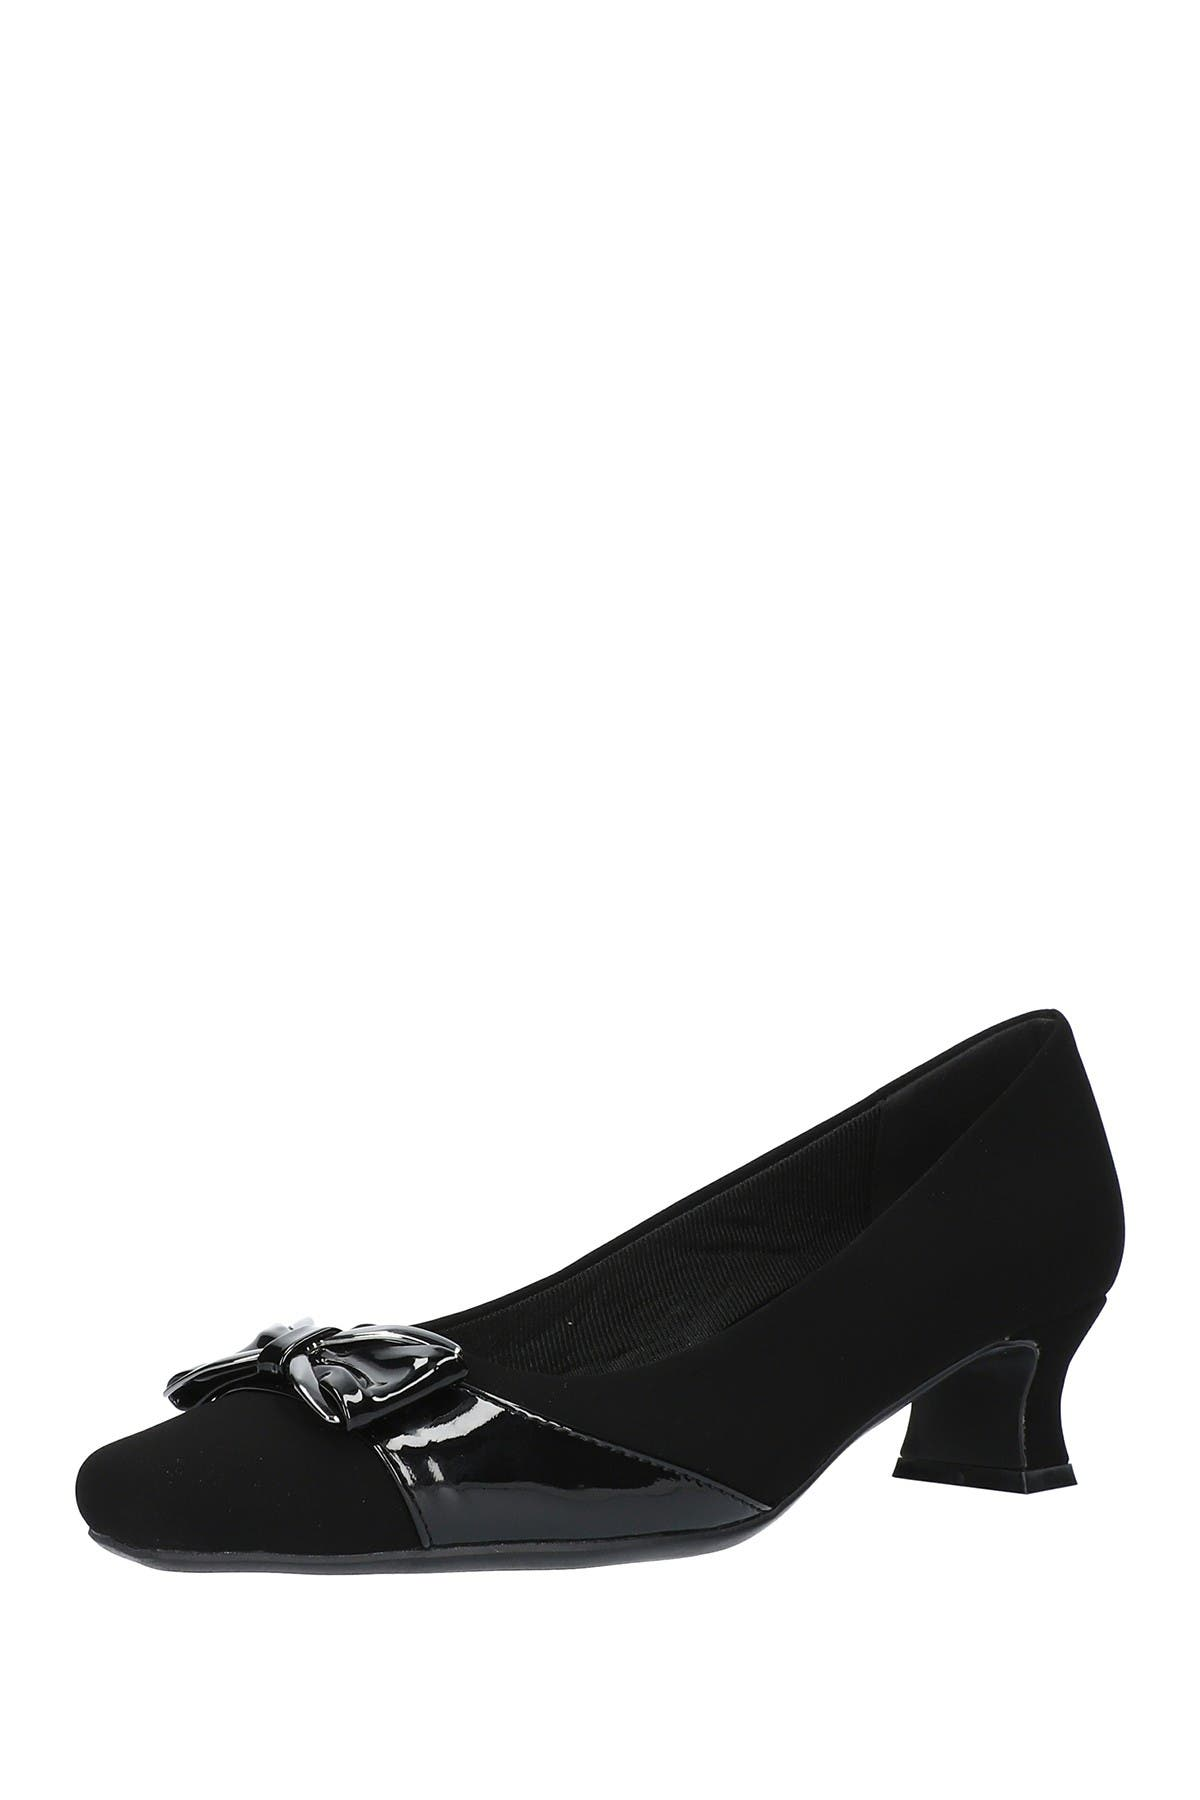 Image of EASY STREET Rejoice Square Toe Pump - Multiple Widths Available